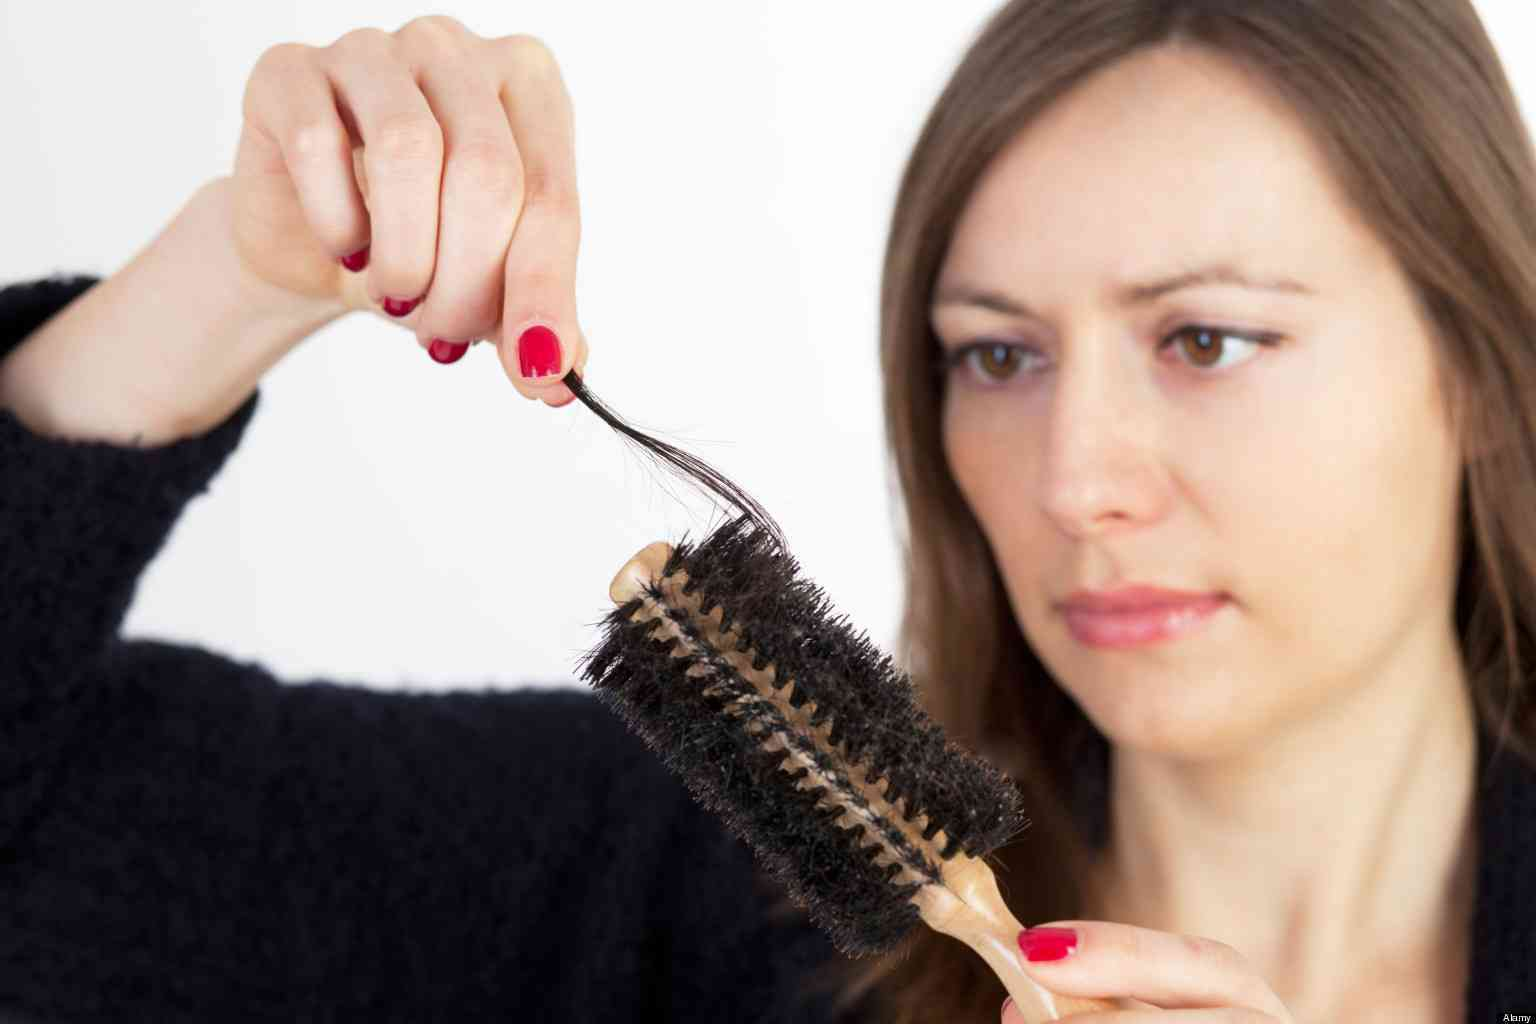 Dark-haired woman being sad, because of having problems with hair loss